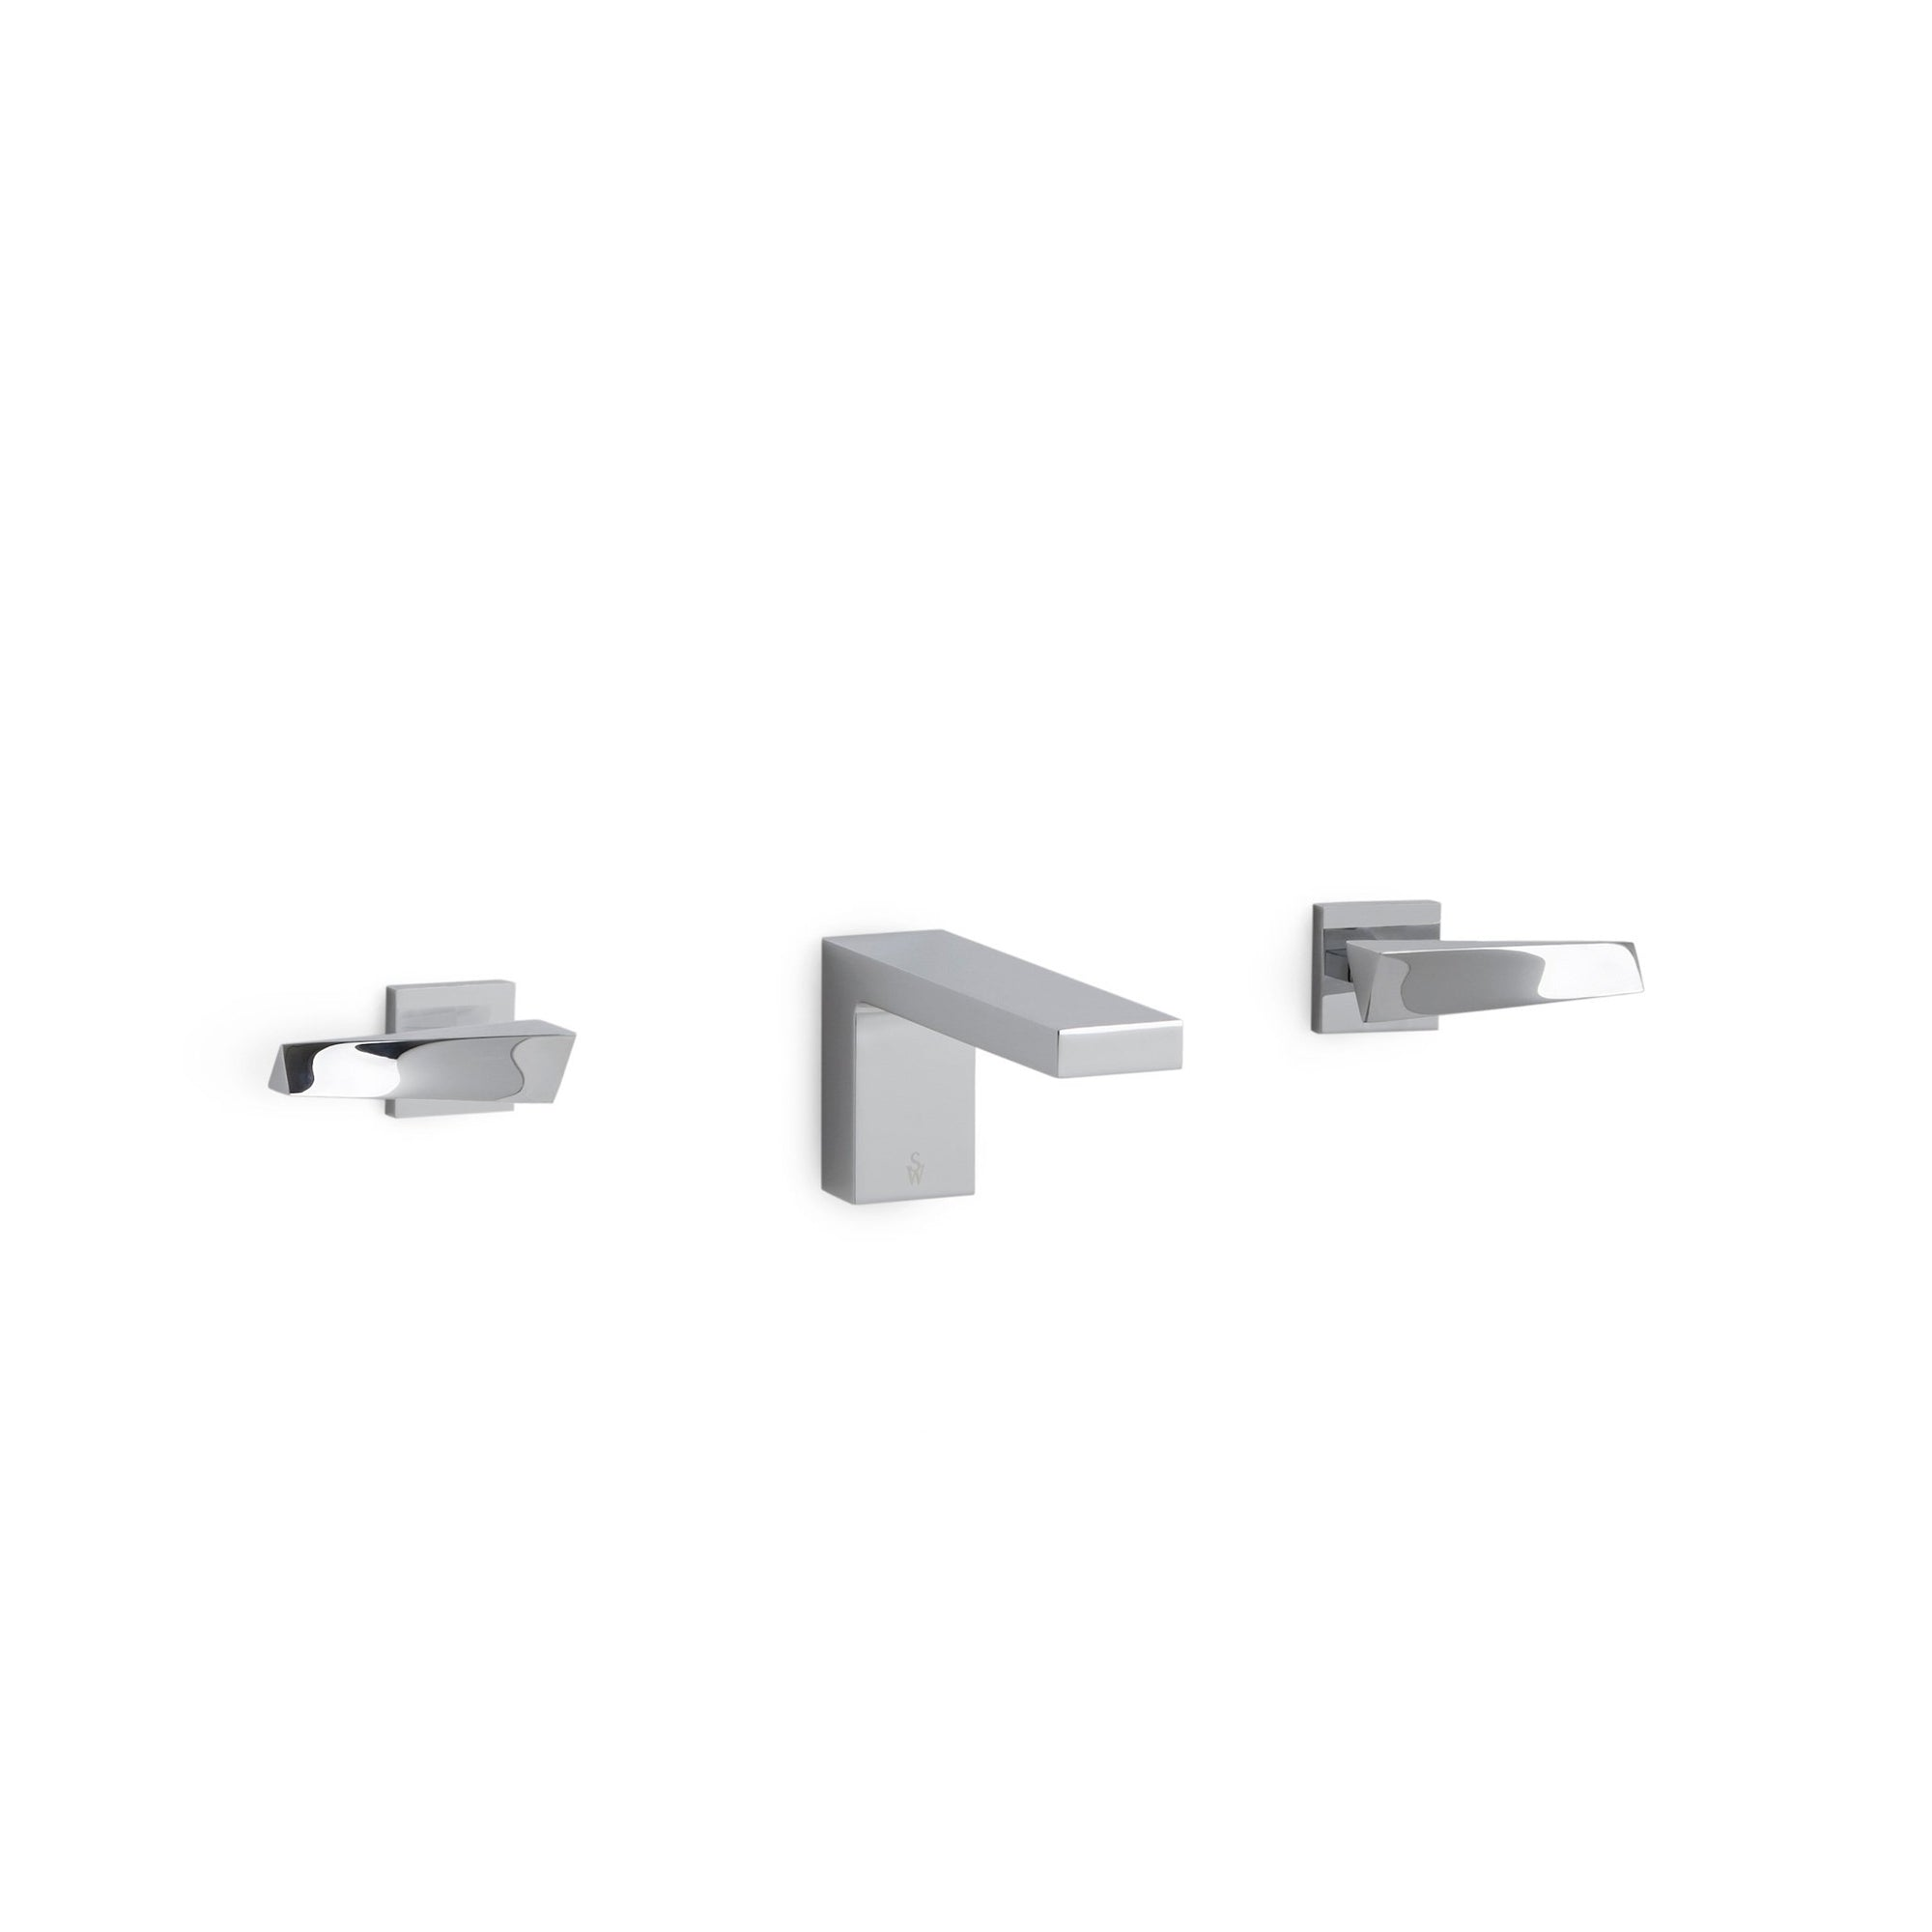 008WBS101-CP Sherle Wagner International Modern with Arco Lever Wall Mount Faucet Set in Polished Chrome metal finish